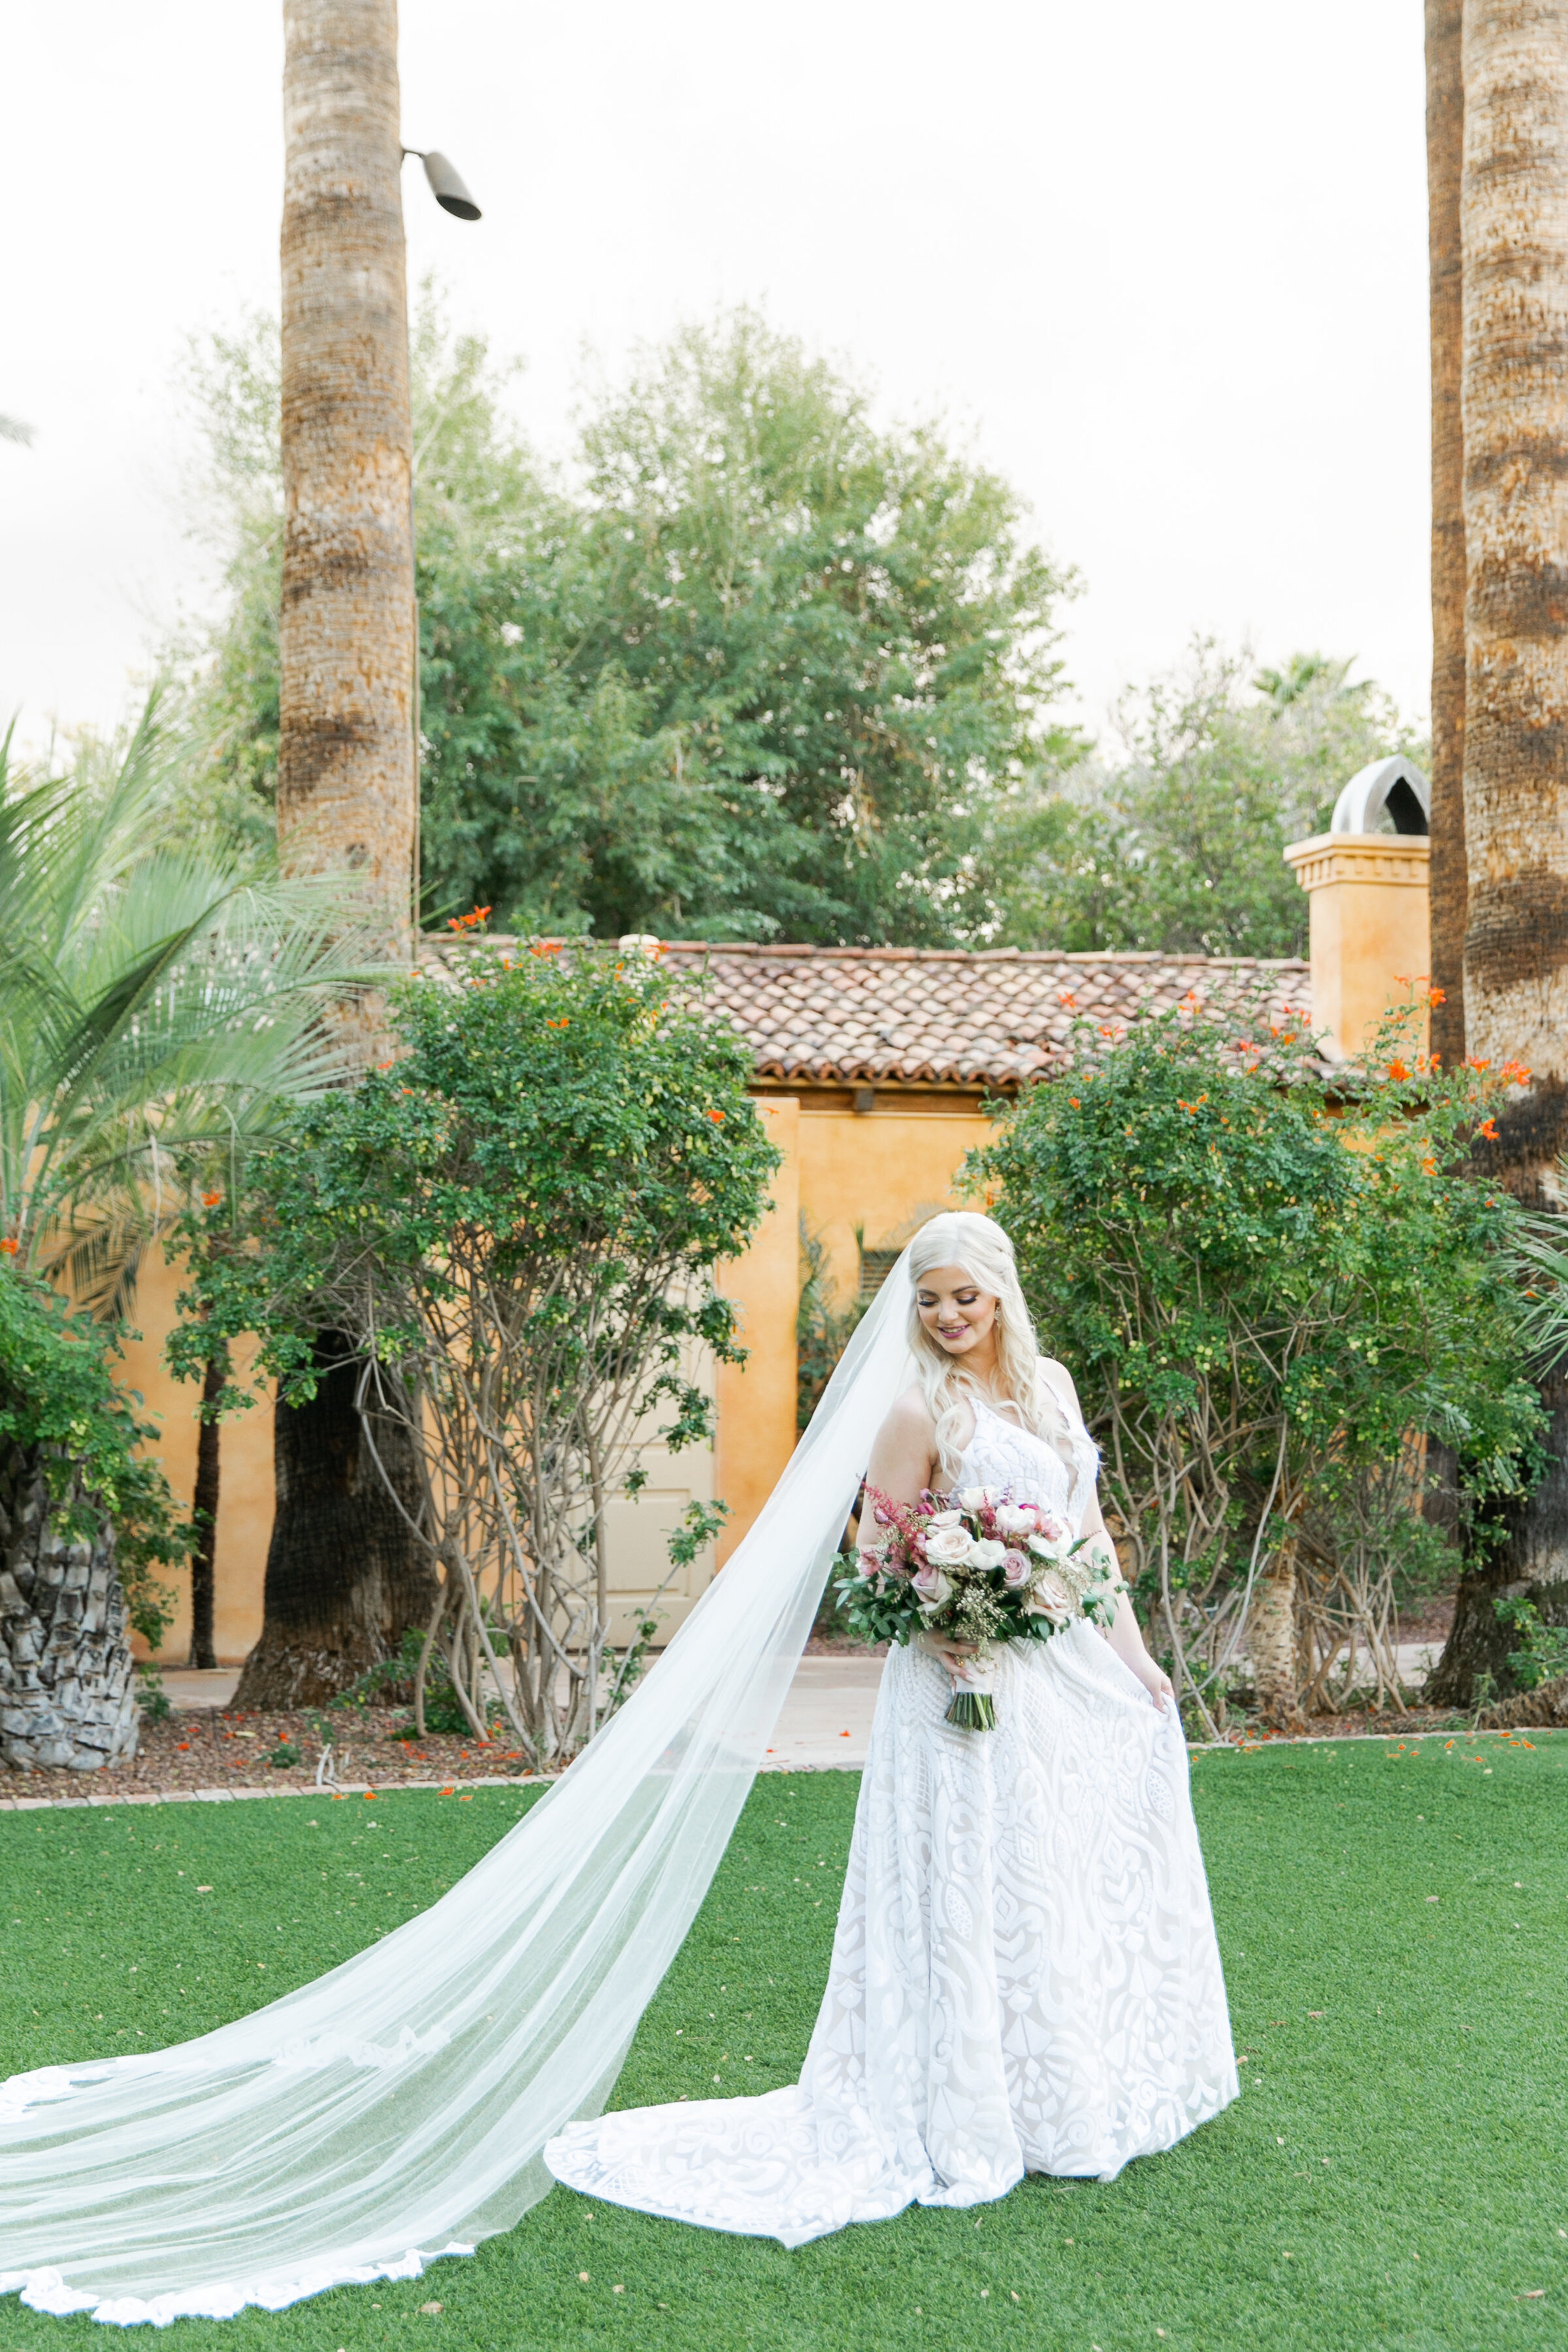 Karlie Colleen Photography - The Royal Palms Wedding - Some Like It Classic - Alex & Sam-491